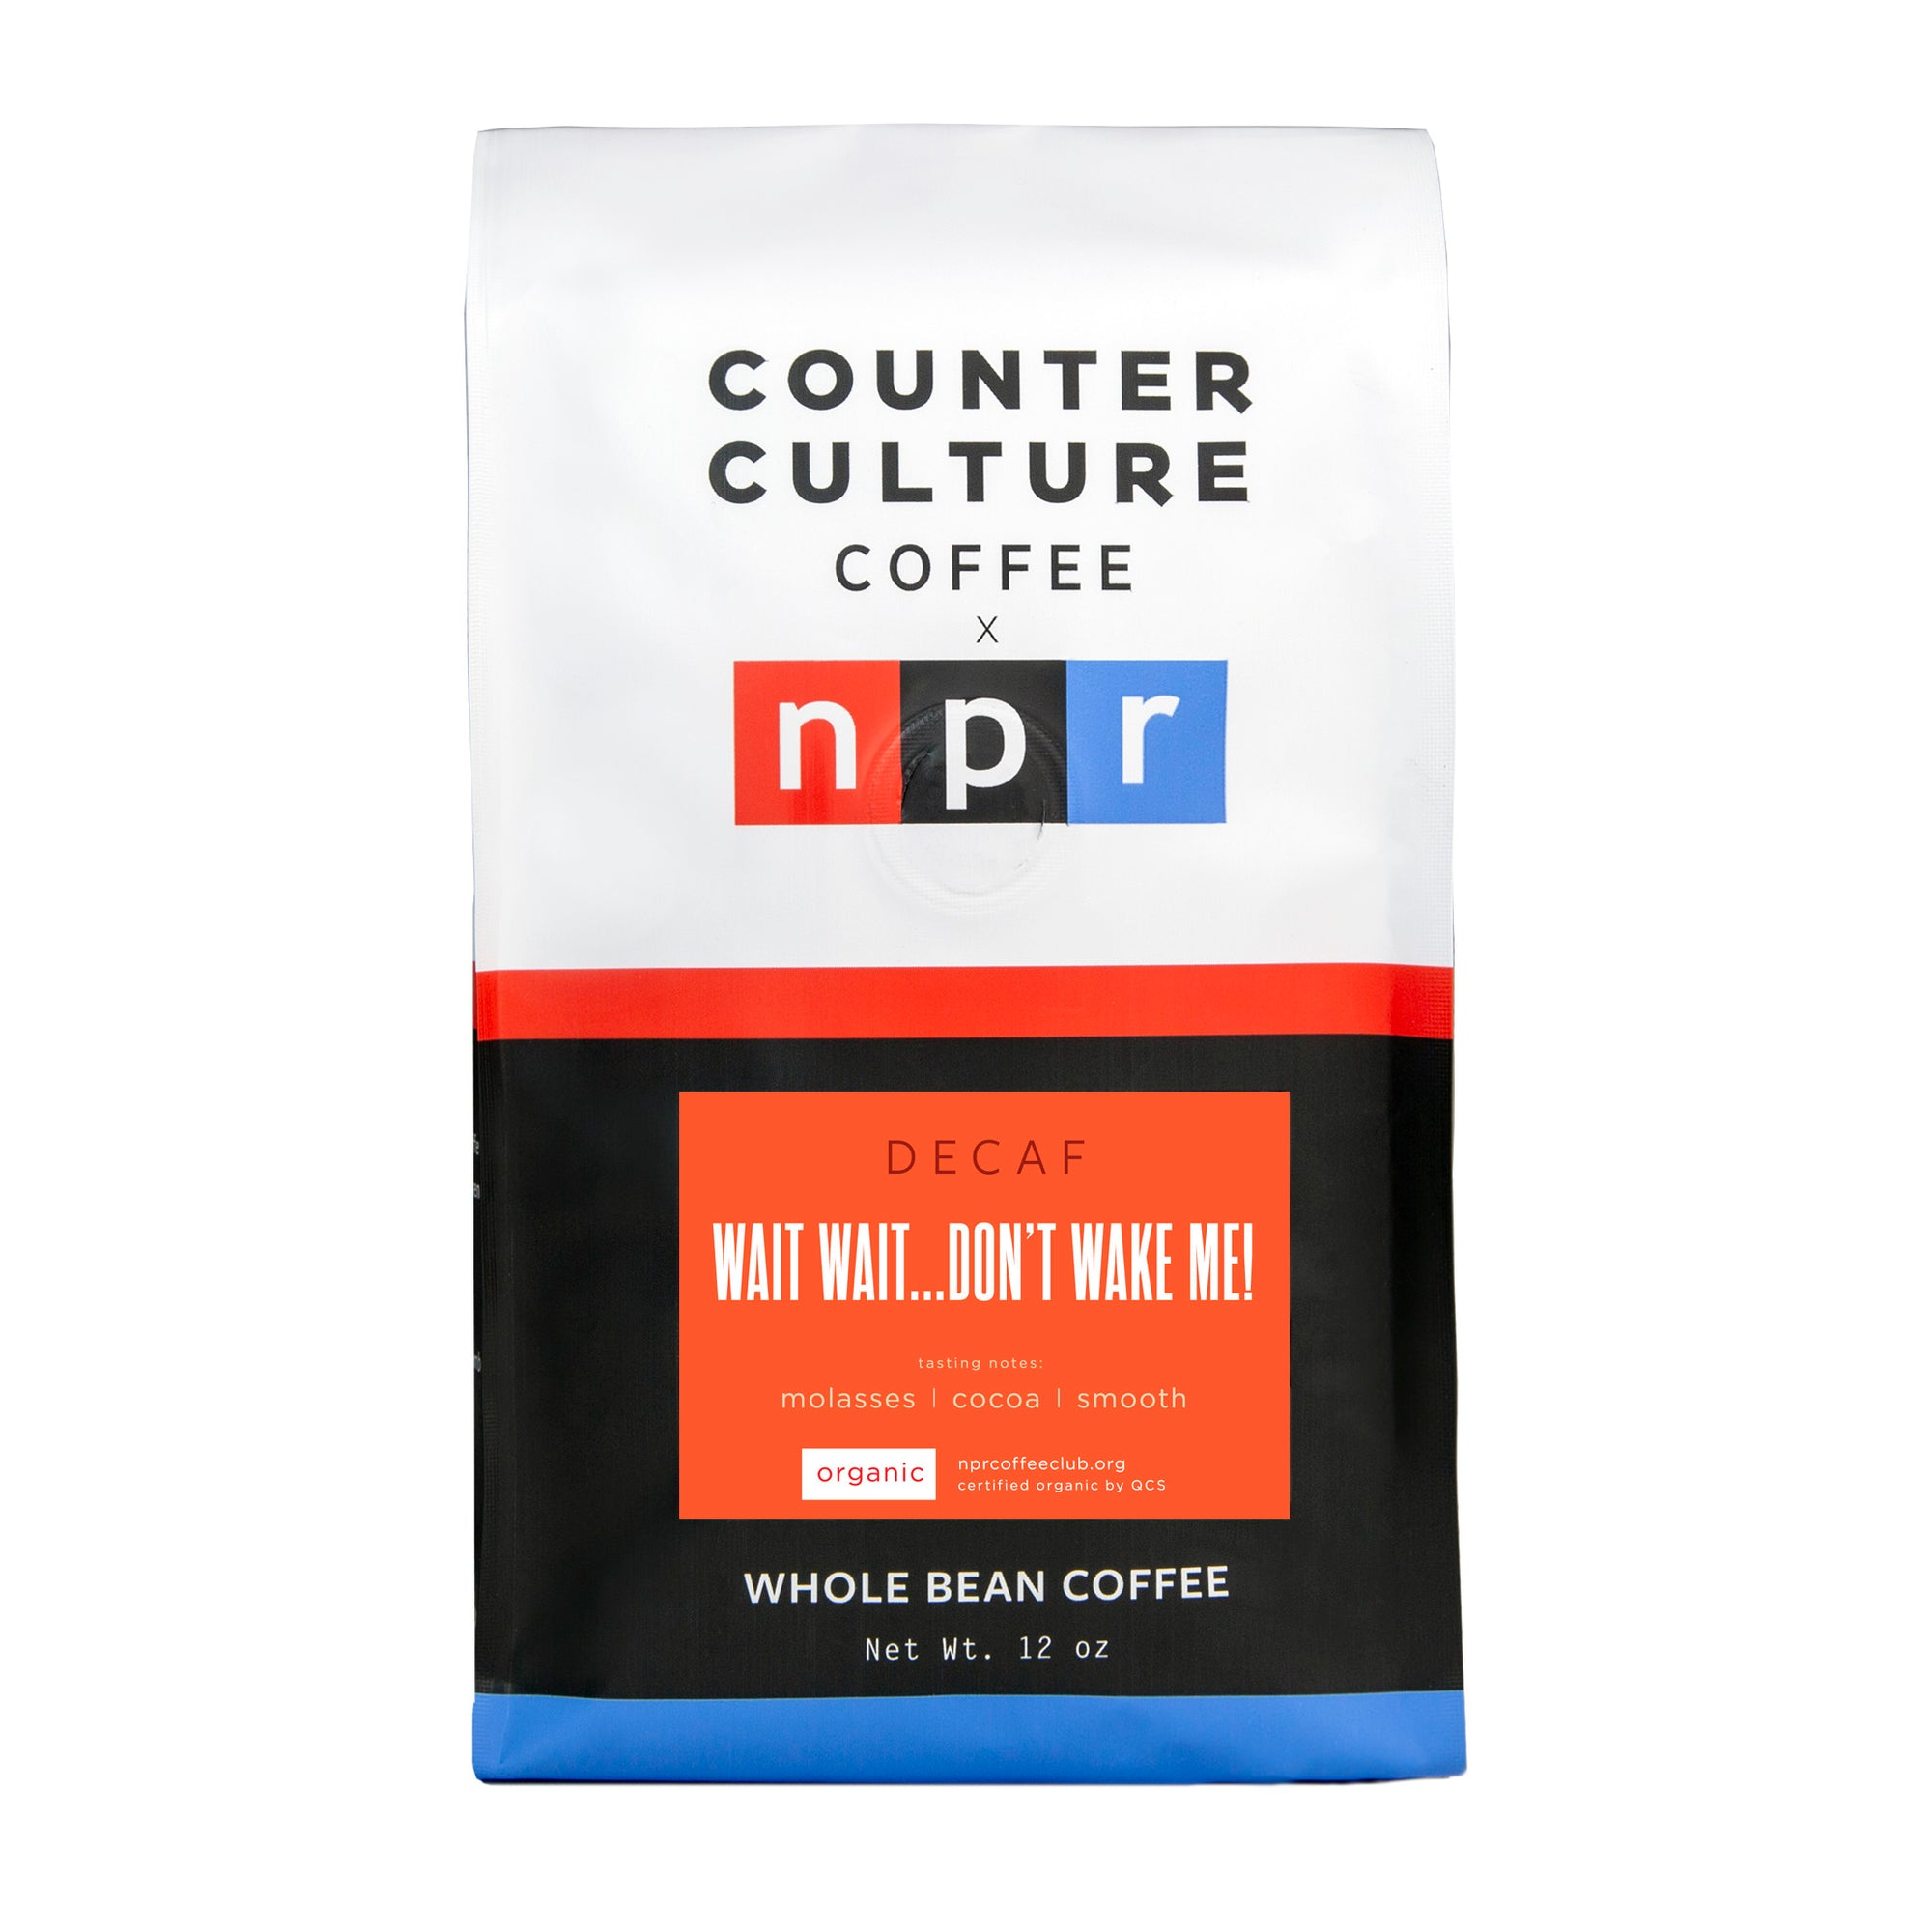 Wait Wait...Don't Wake Me! - Decaf Gift Subscription